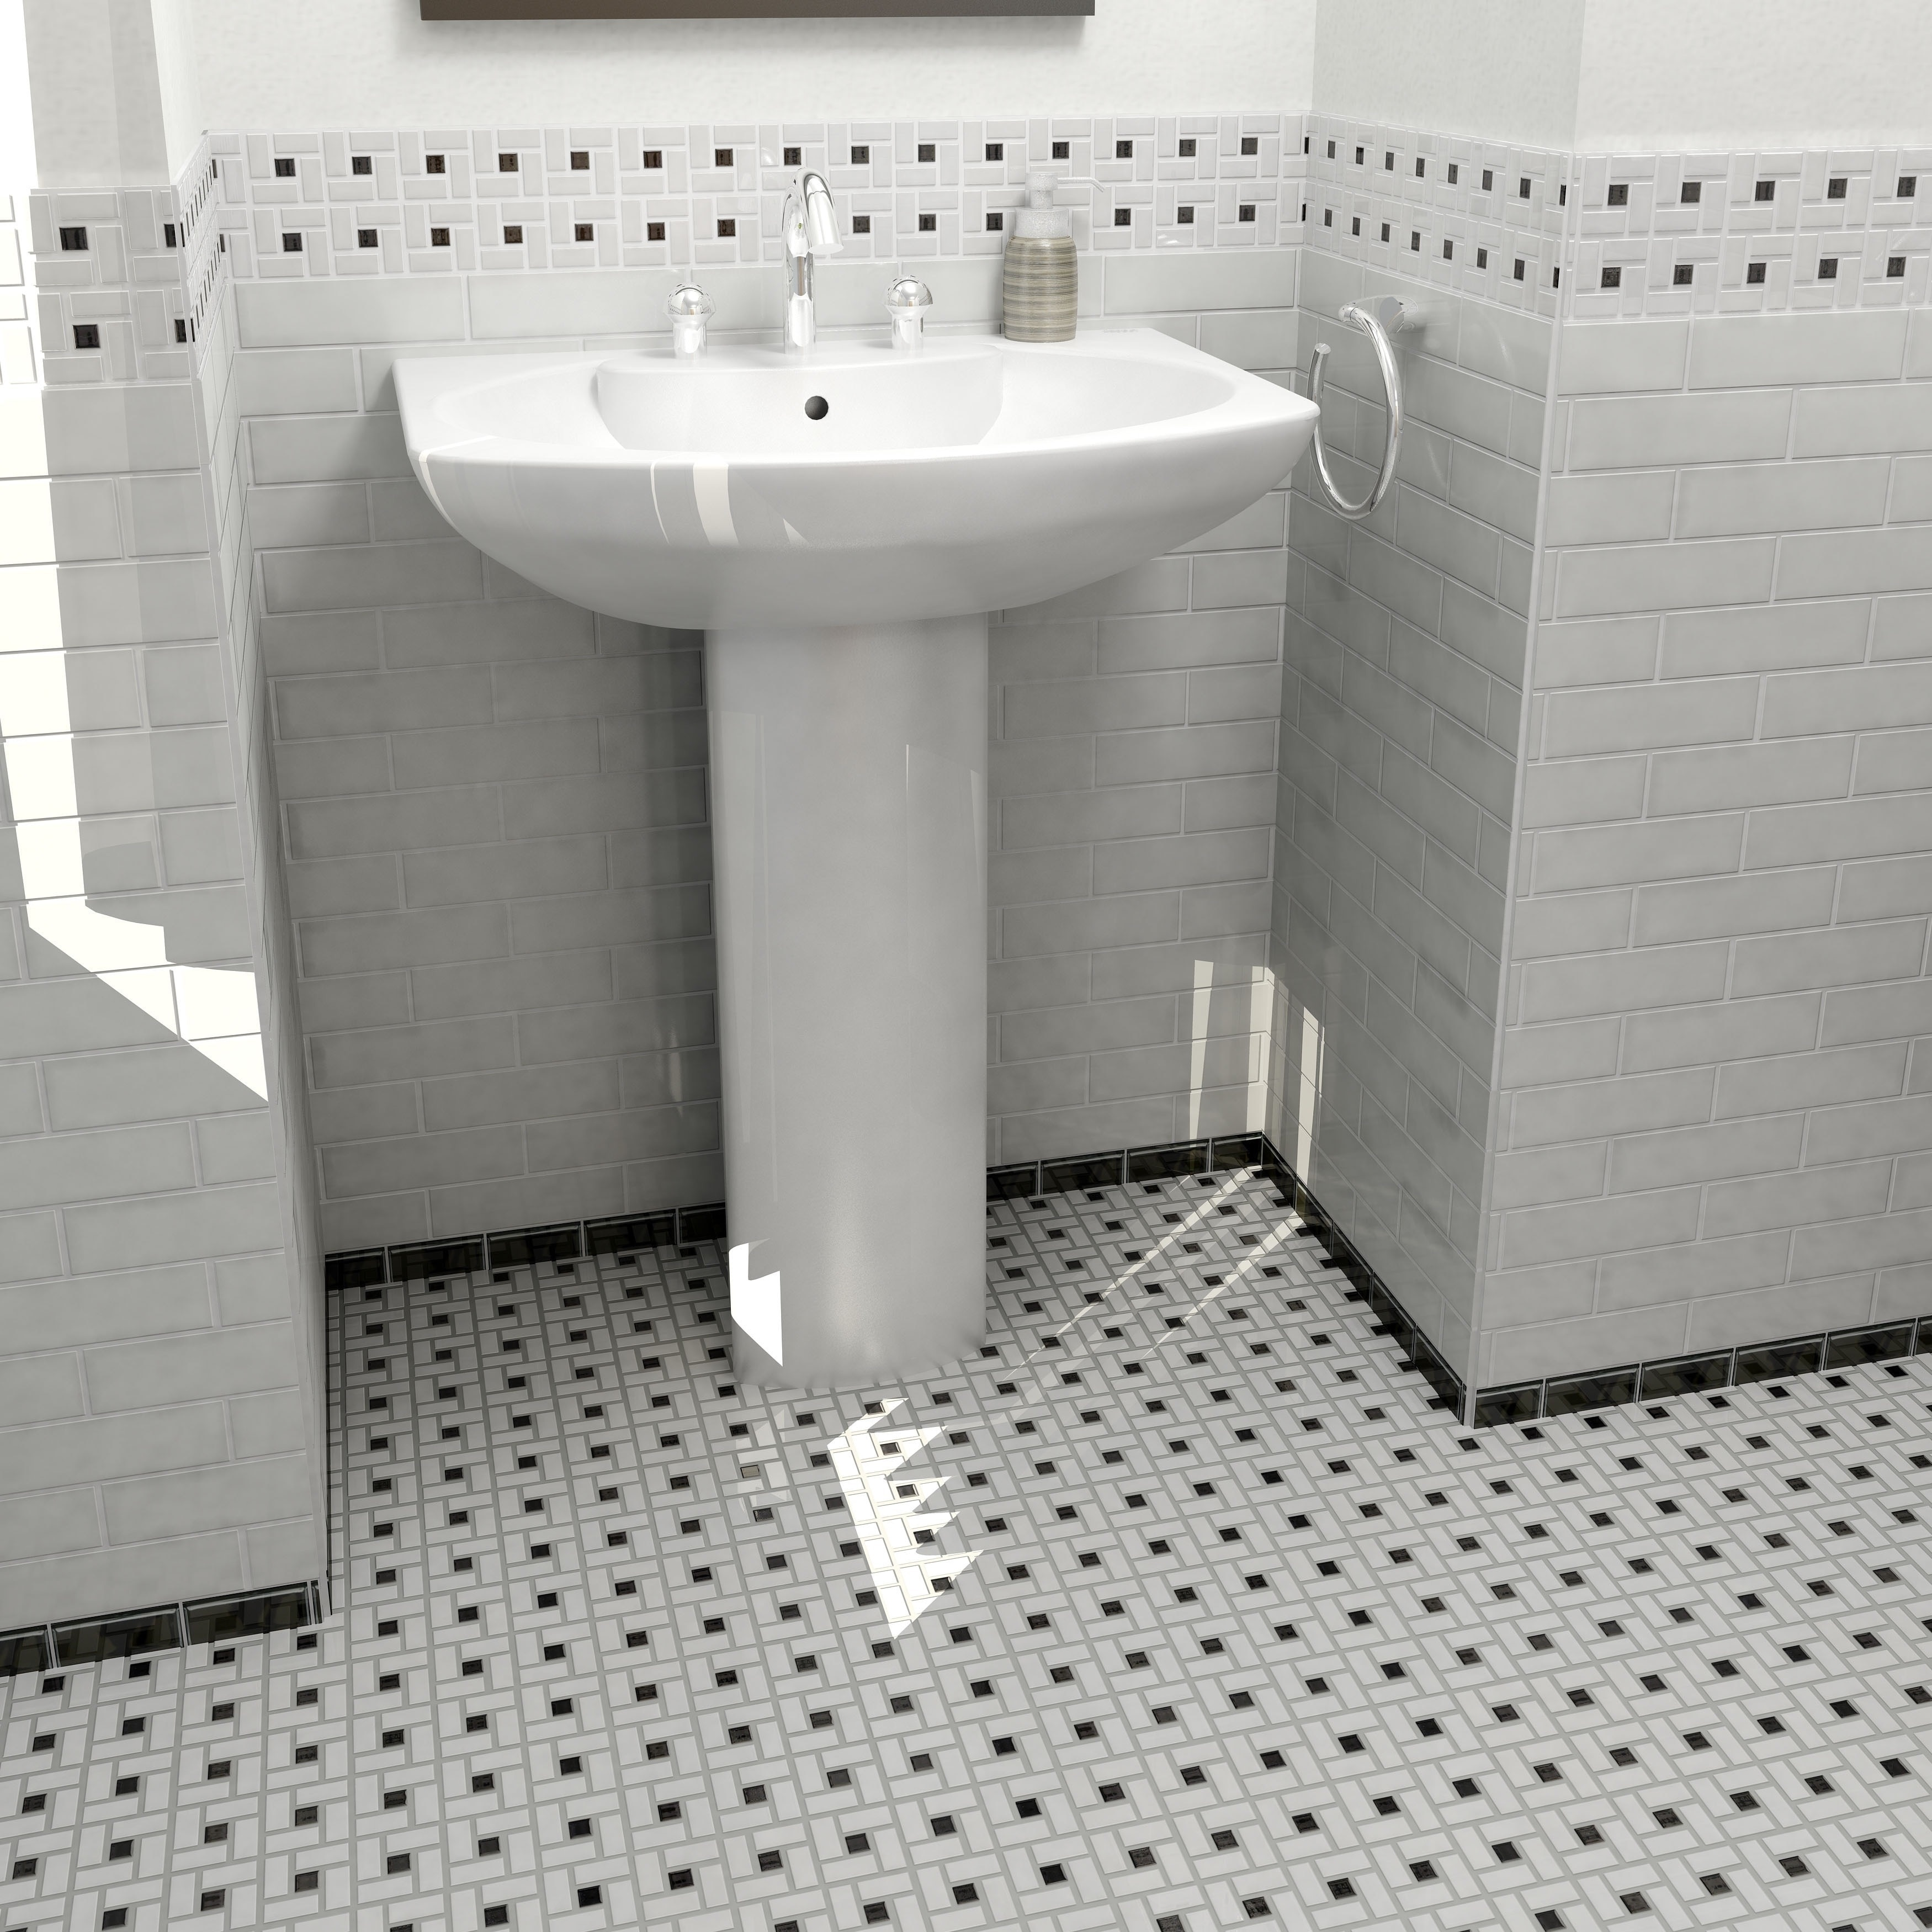 Black And White Bathroom Tile >> Somertile 12 5x12 5 Inch Spiral Black And White Porcelain Mosaic Floor And Wall Tile 10 Tiles 11 07 Sqft